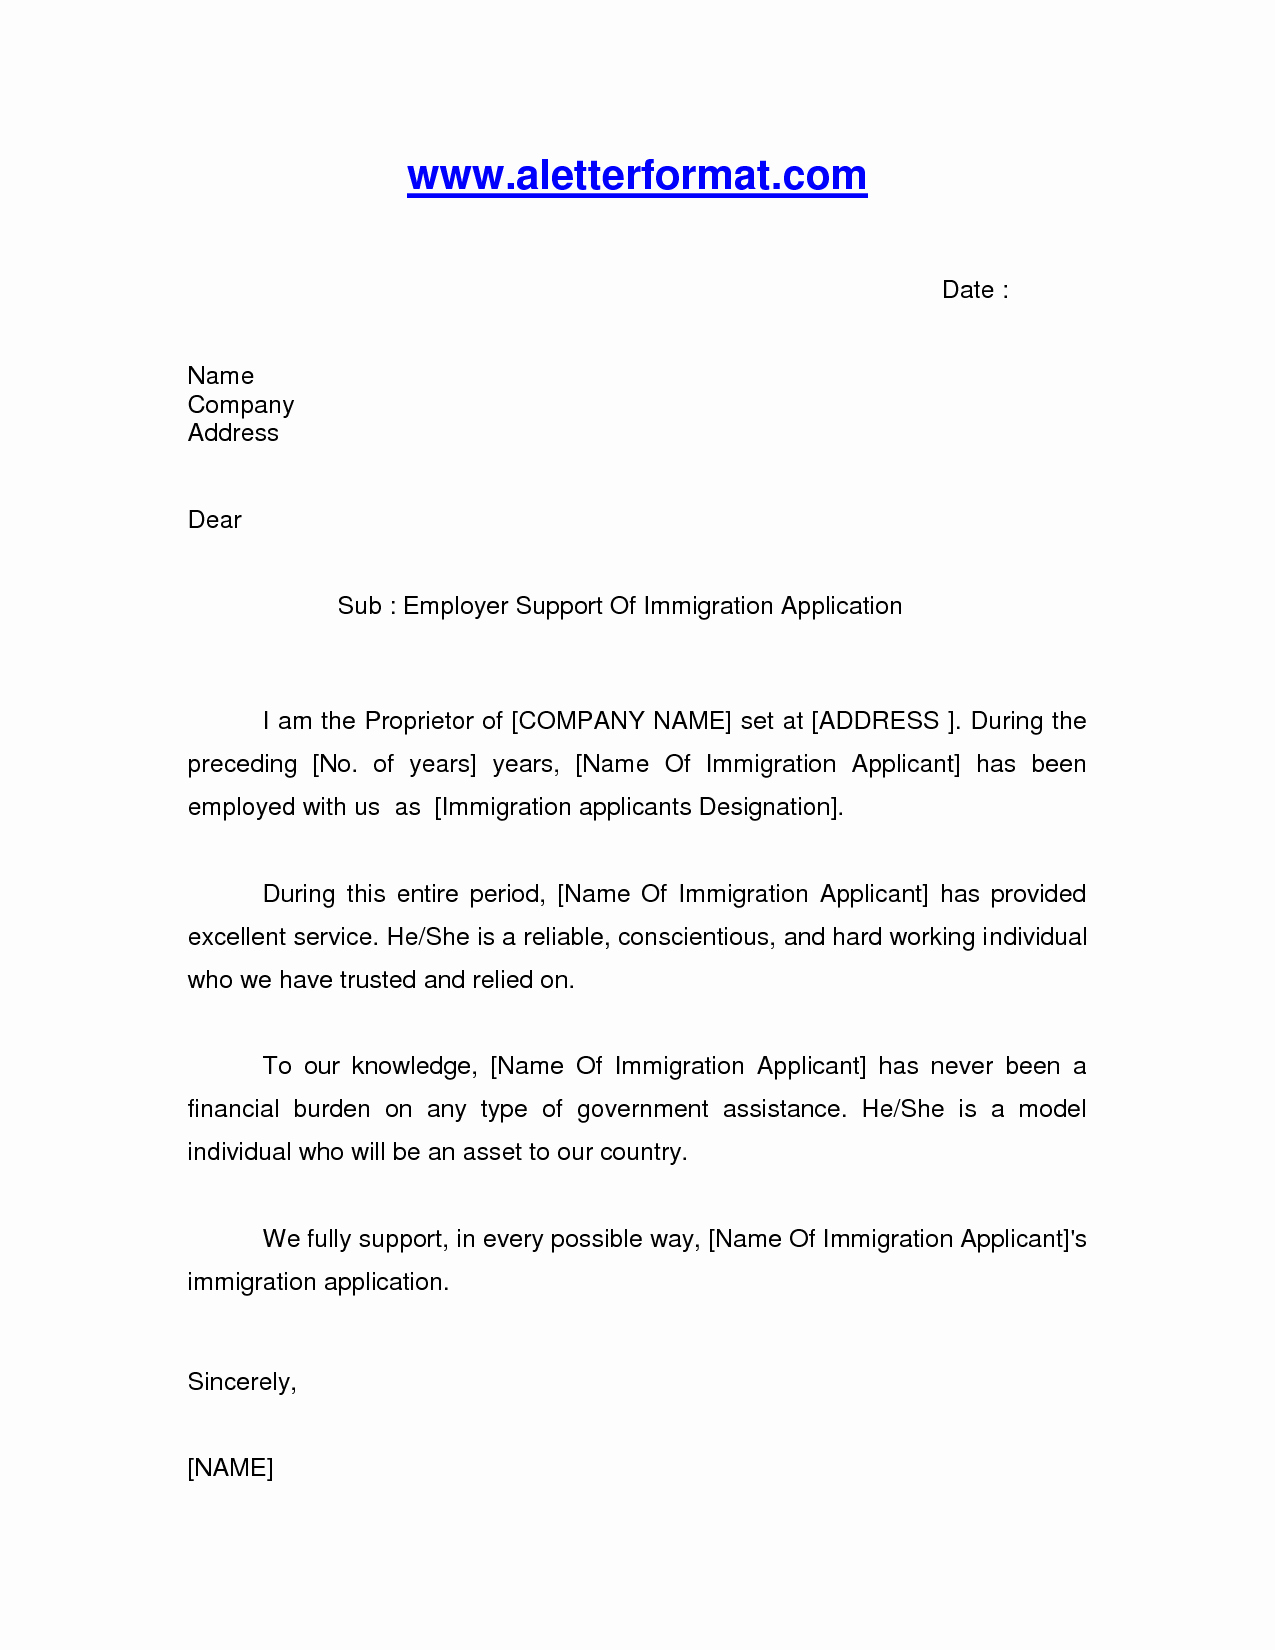 Letters Of Recommendation for Immigration New Immigration Letter Sample Google Search